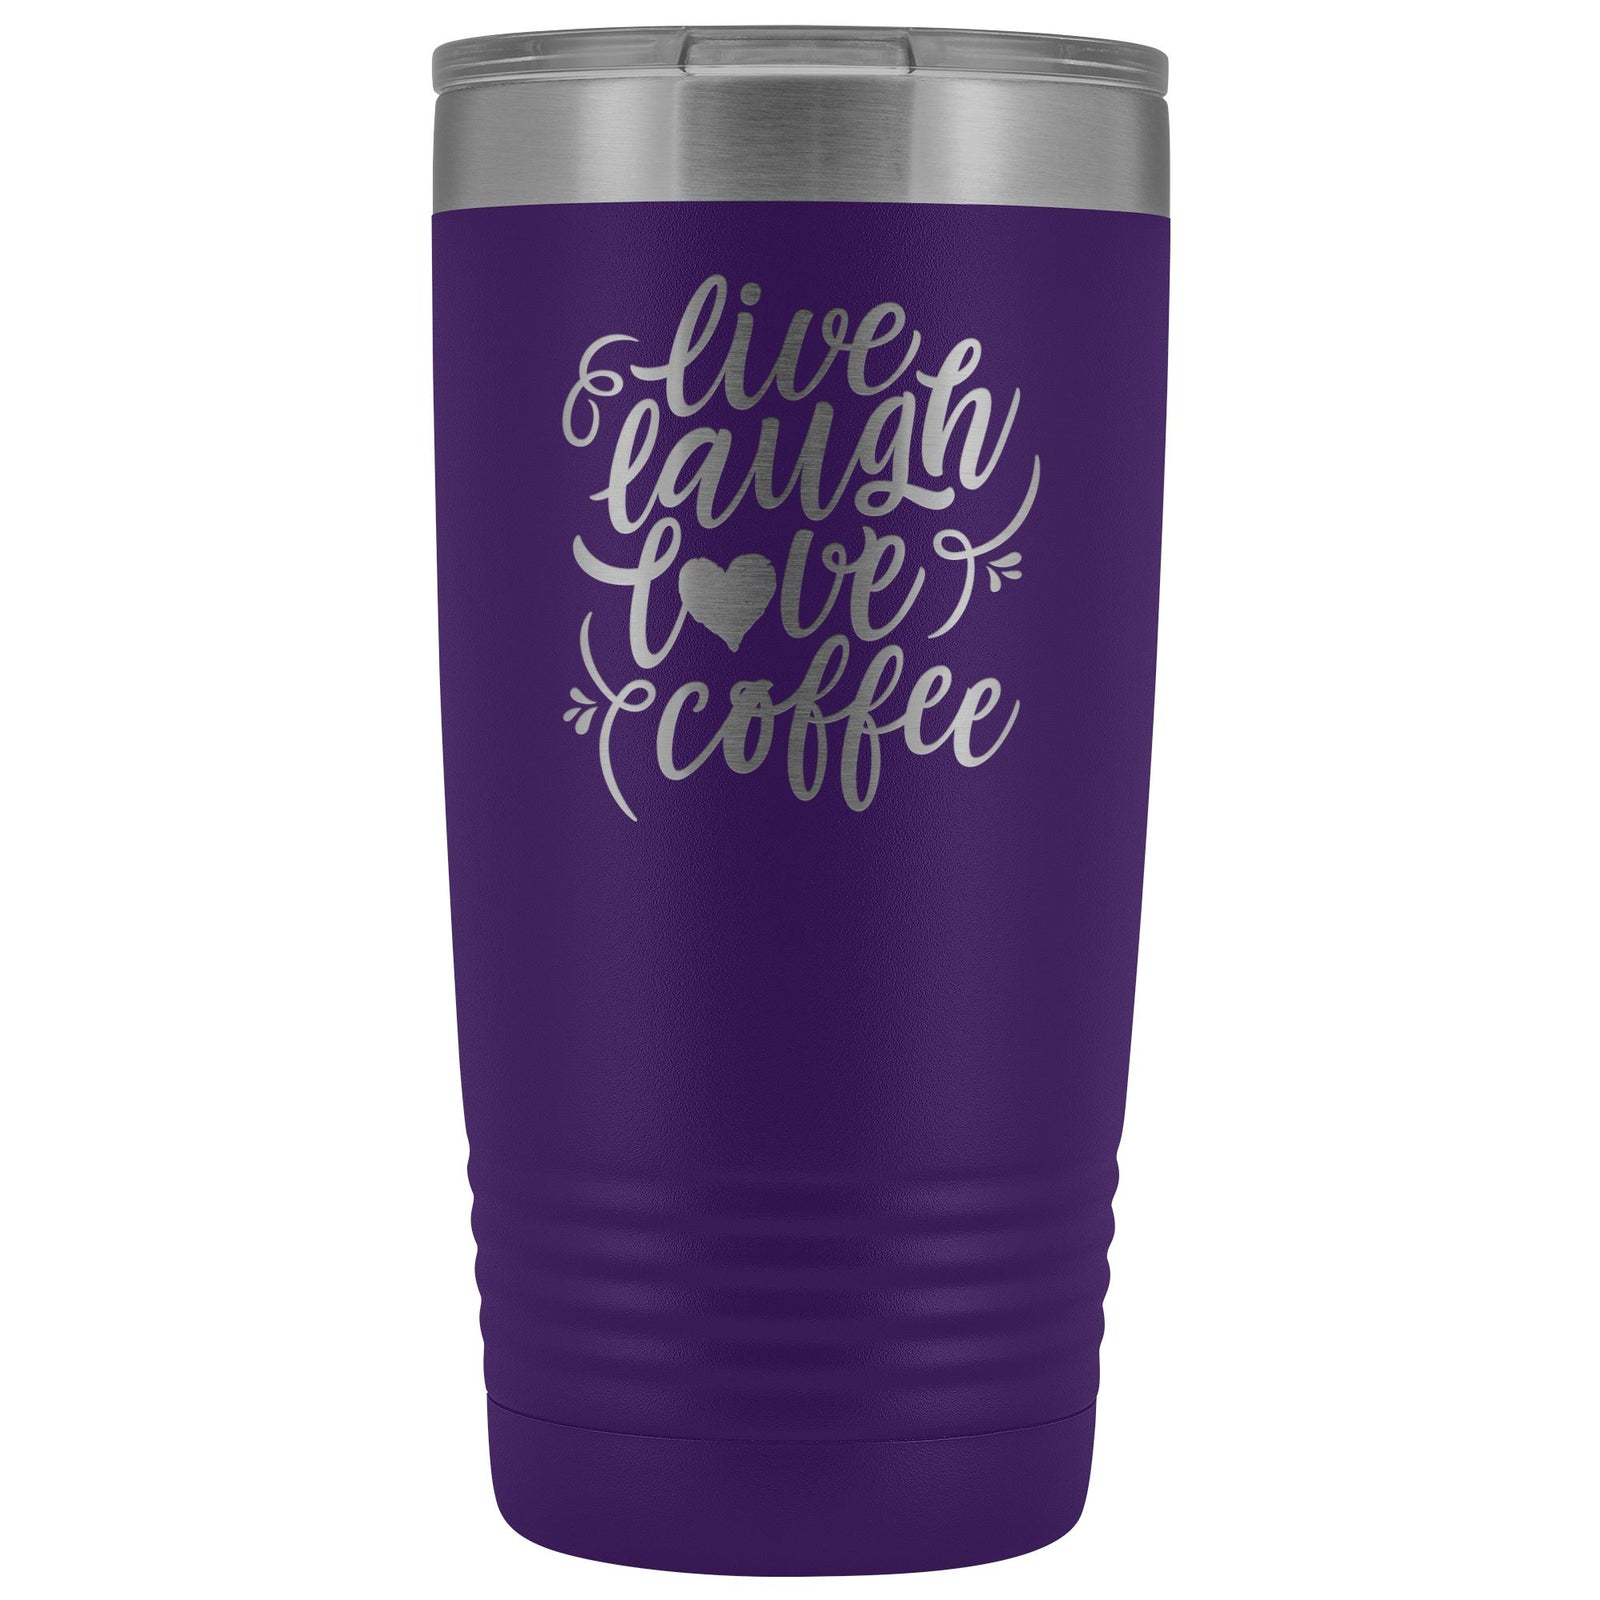 Live, Laugh, Love, Coffee • 15oz Insulated Coffee Tumbler Tumblers teelaunch Purple